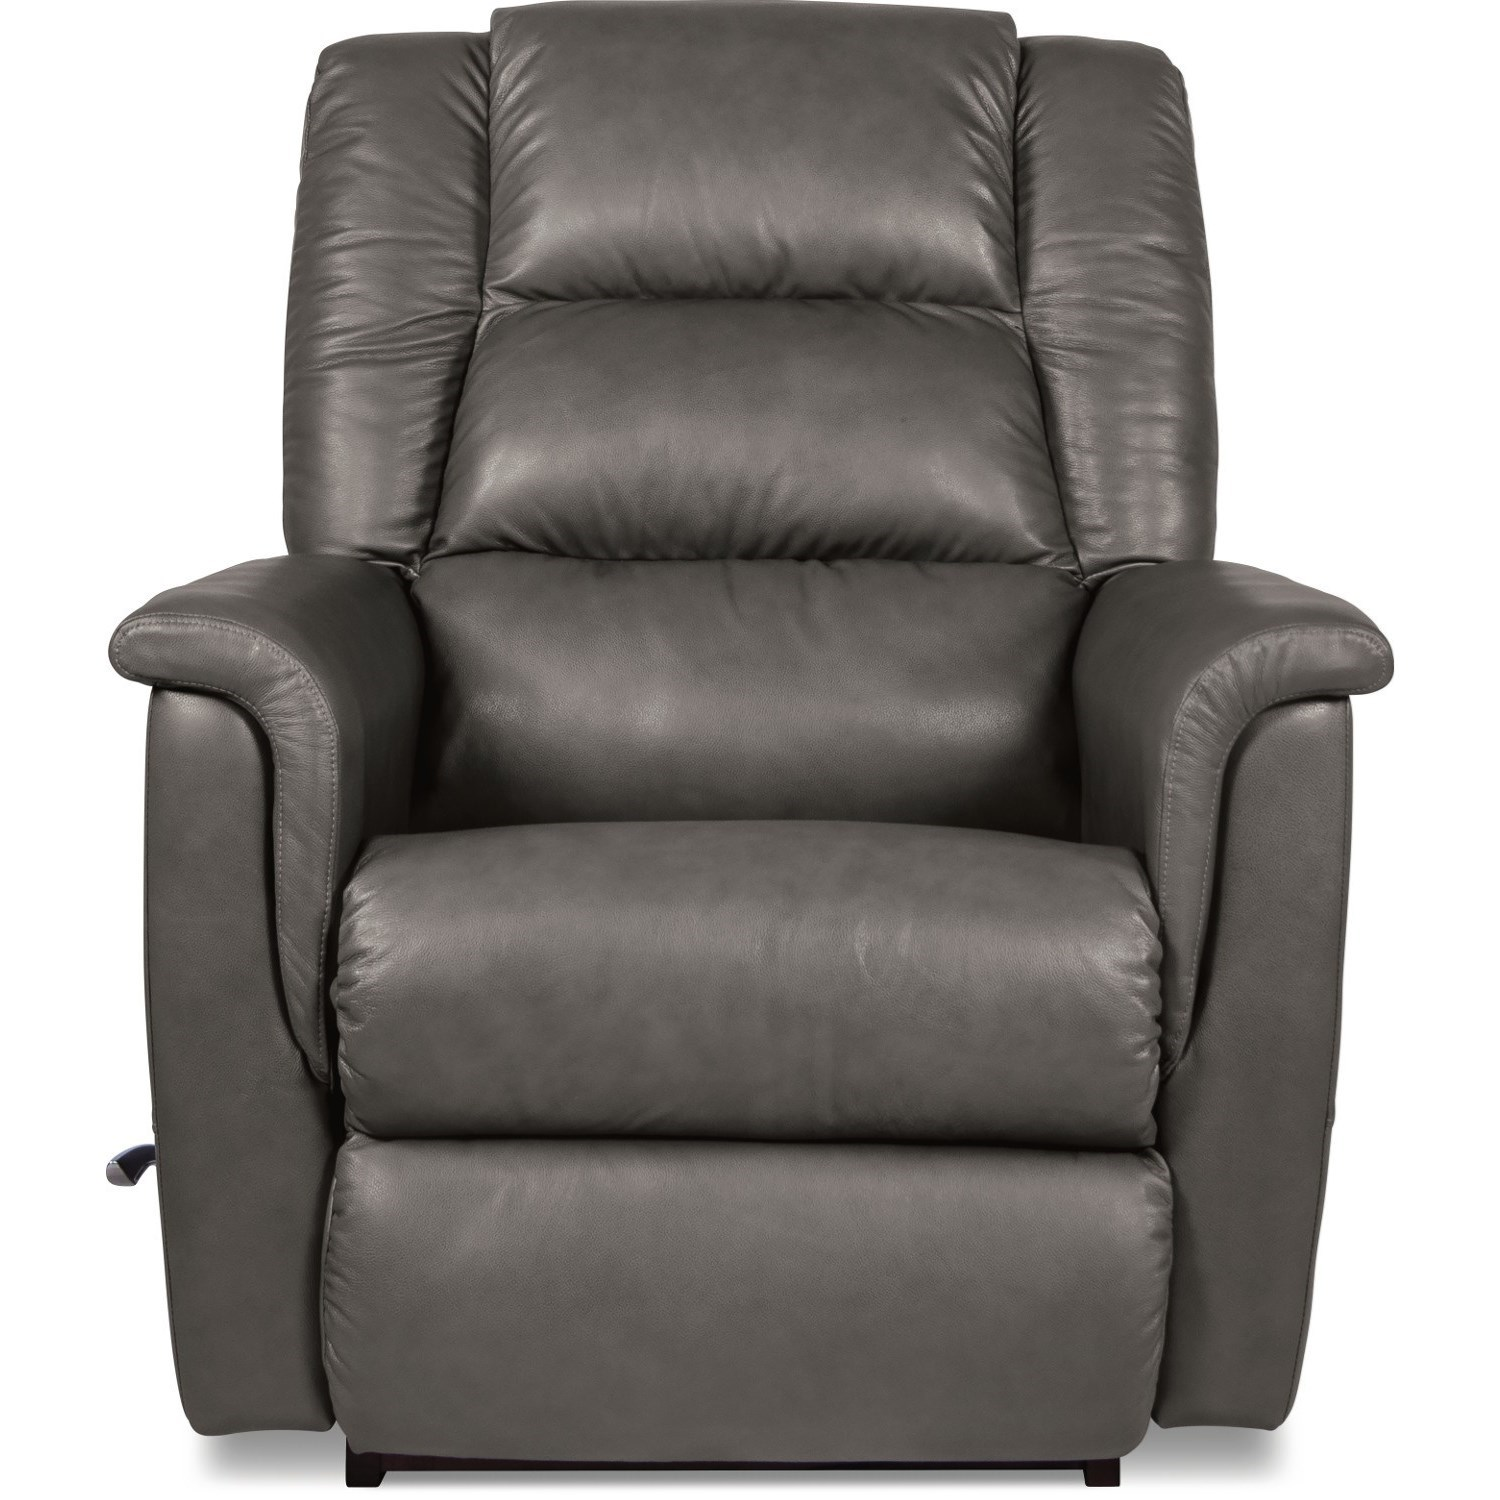 Murray Wall Saver Recliner by La-Z-Boy at Sparks HomeStore